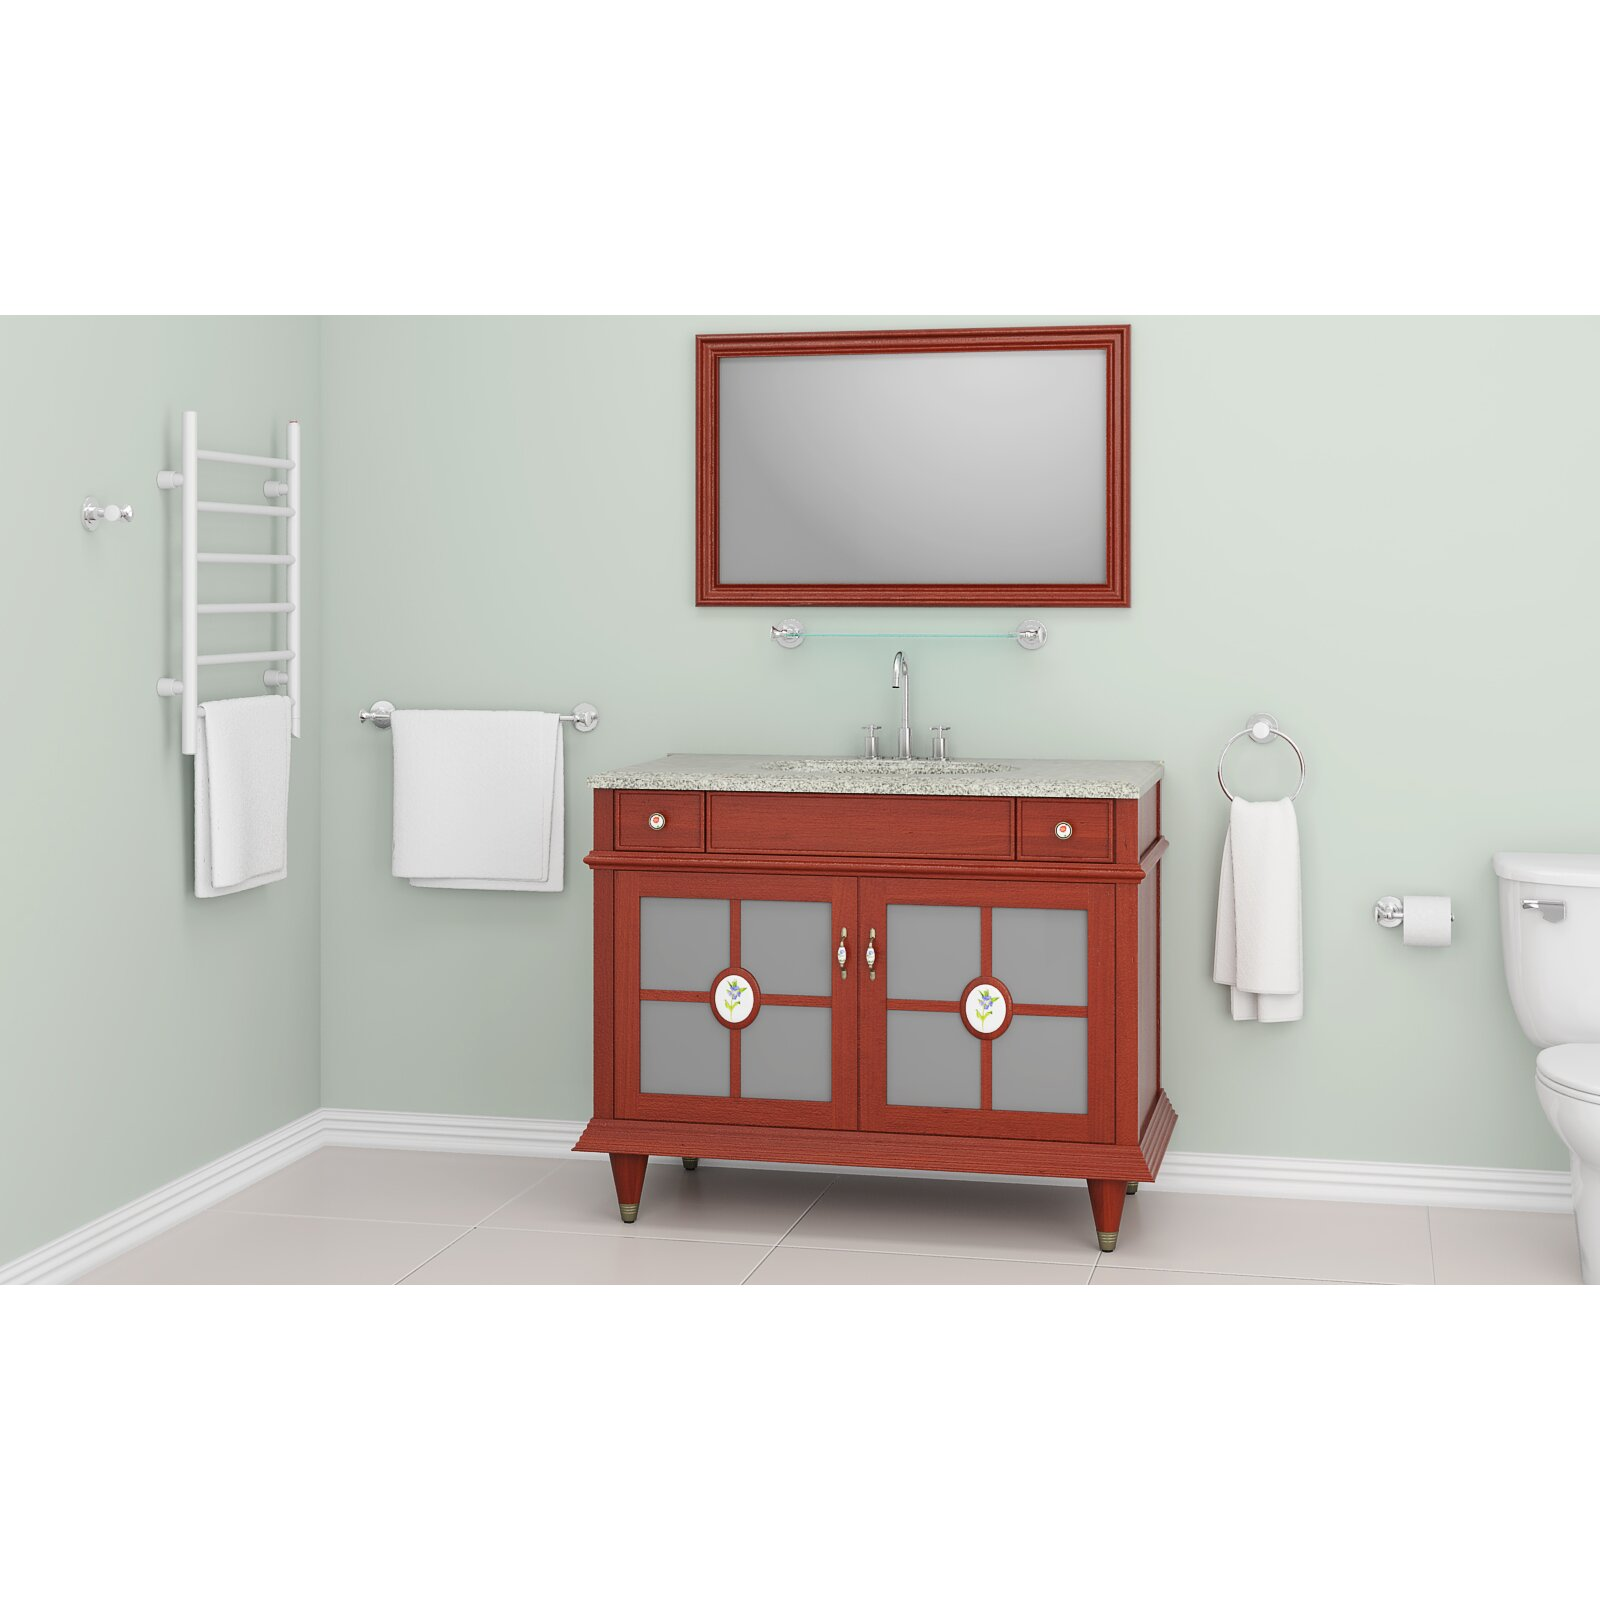 Ancona 5 piece bathroom hardware set reviews for Bathroom 5 piece set